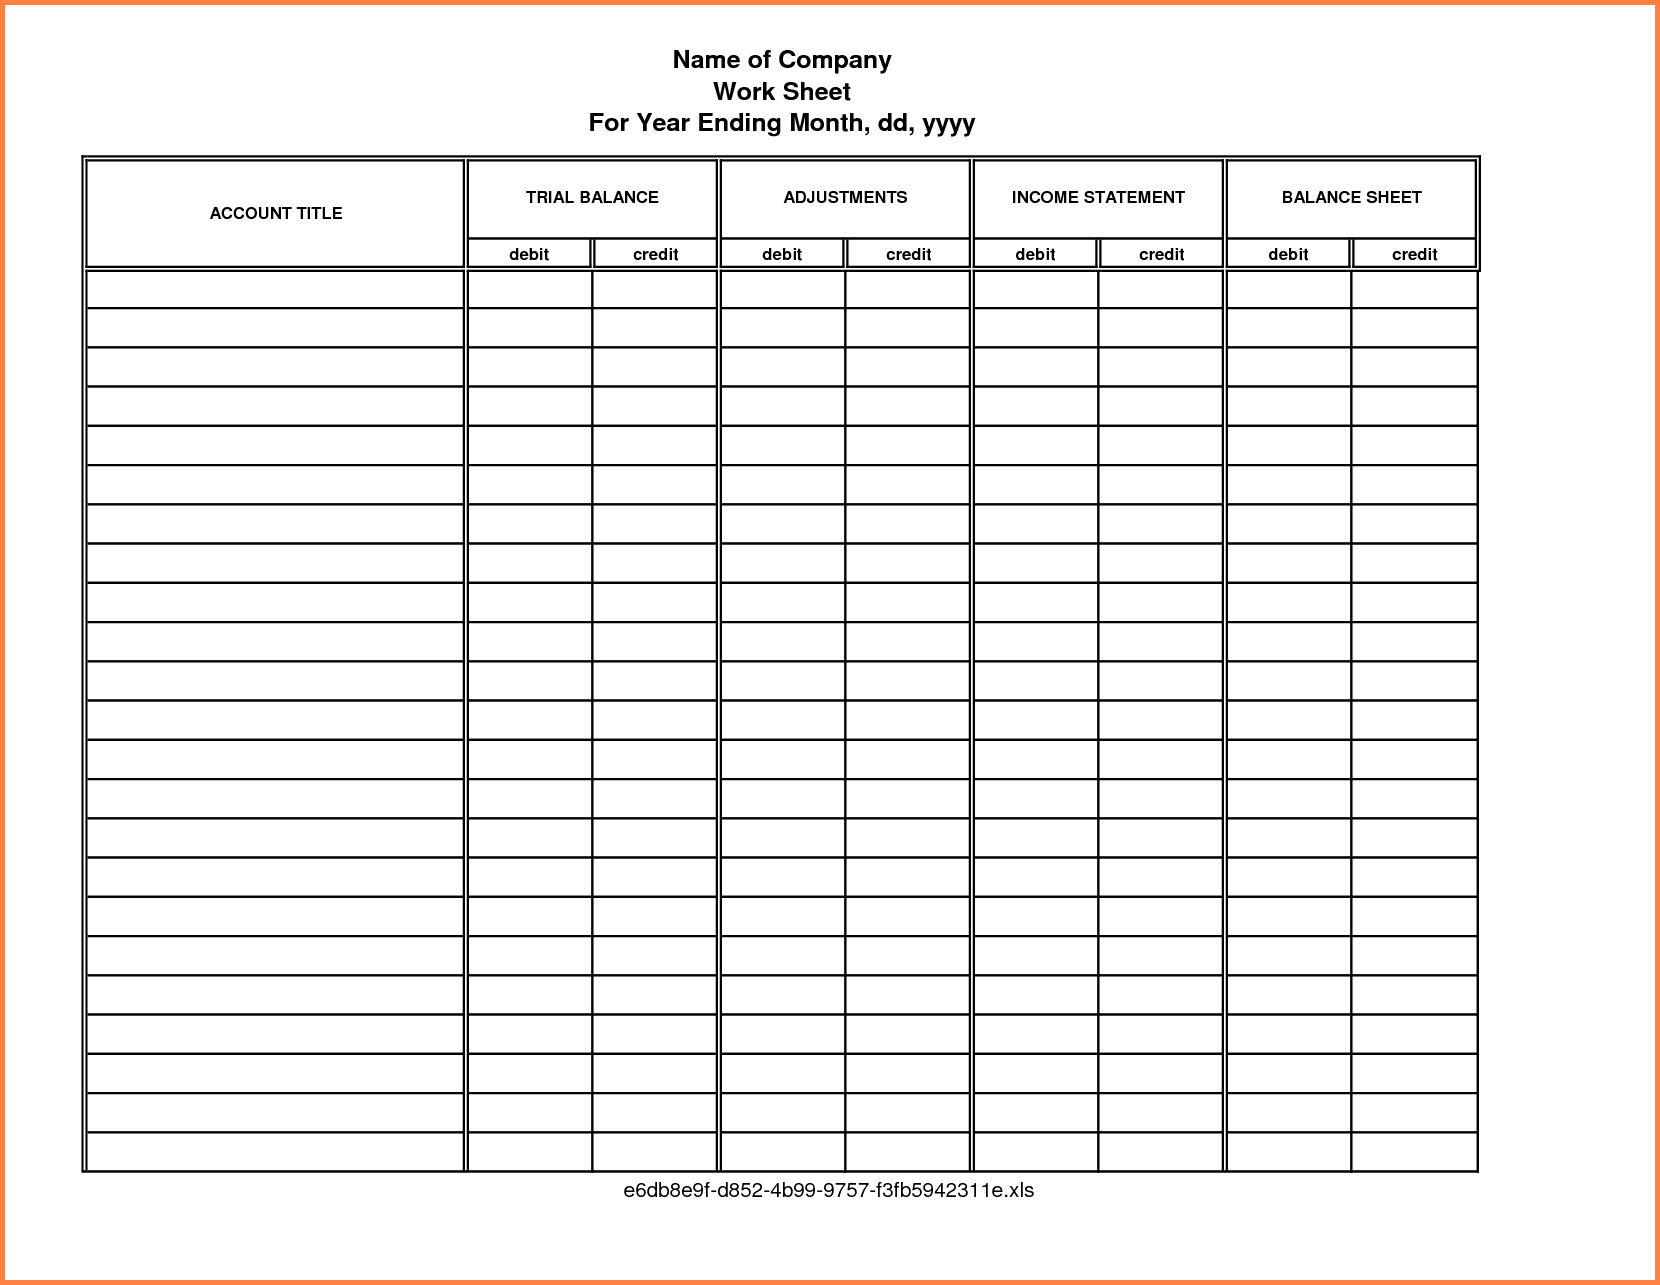 Rent Collection Spreadsheet and 8 Accounting Spreadsheet Templates Excel Excel Spreadsheets Group